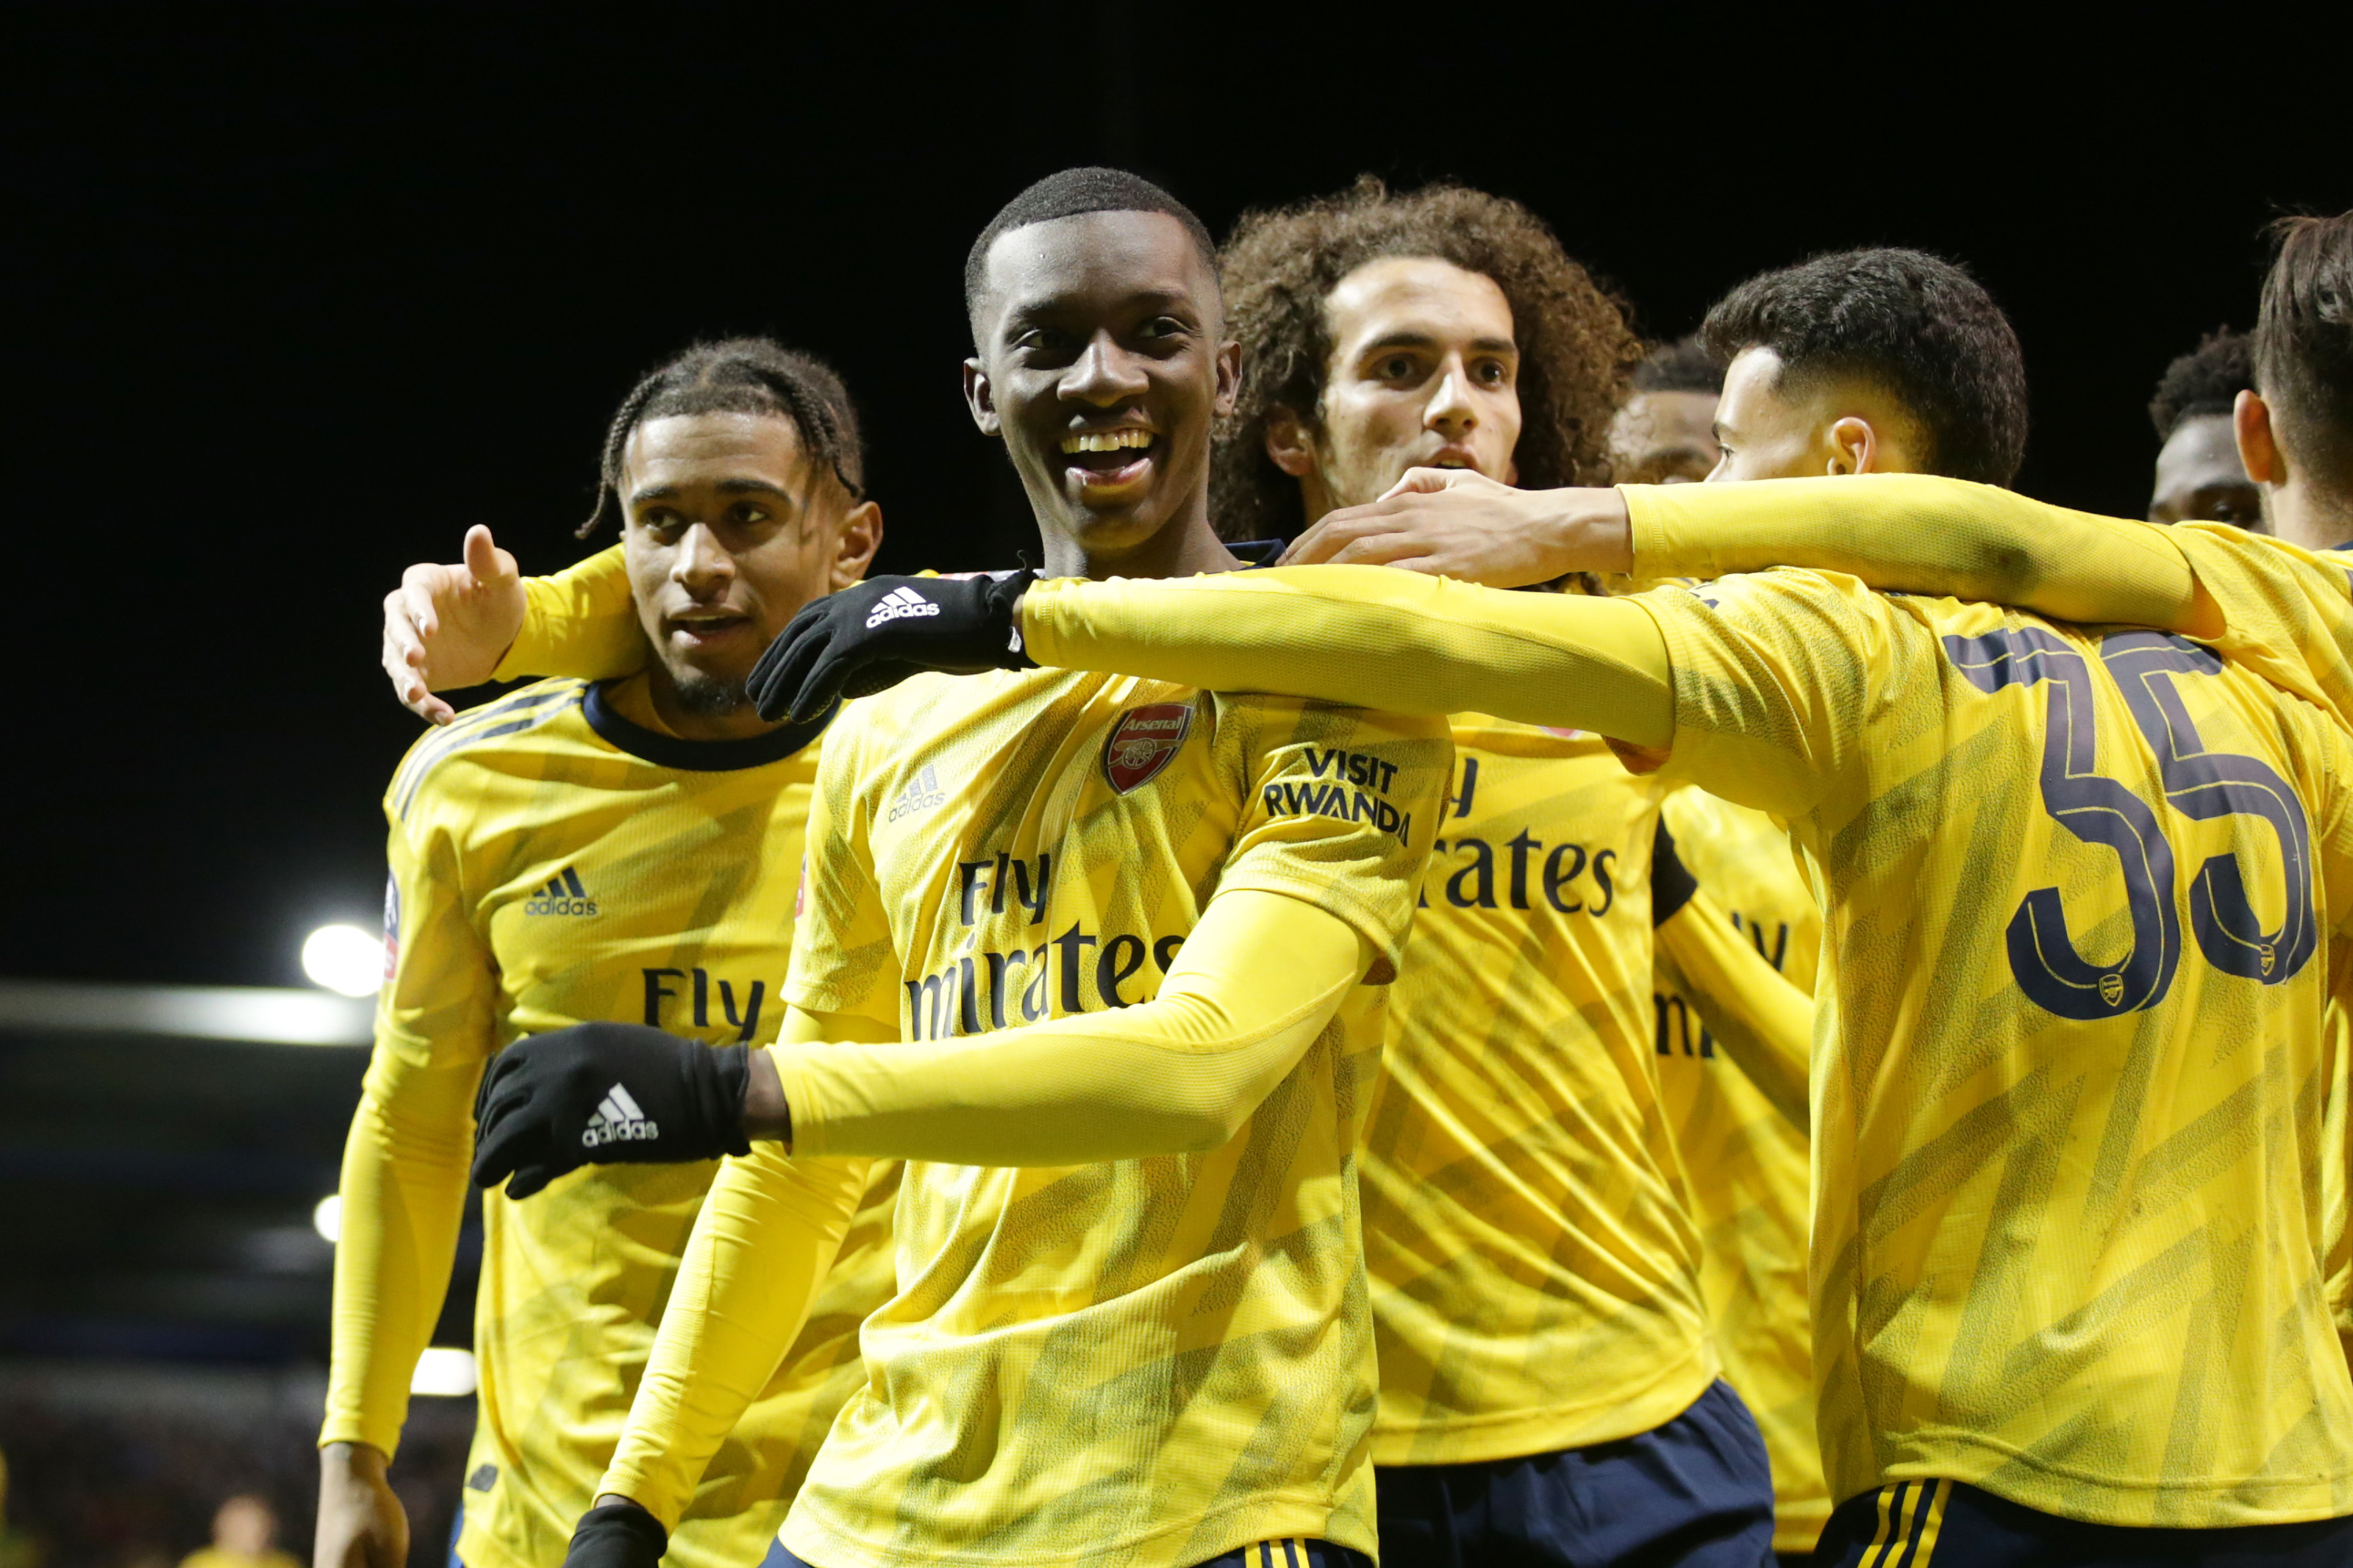 Arsenal Vs Porstmouth: 5 things we learned – The future is bright thumbnail